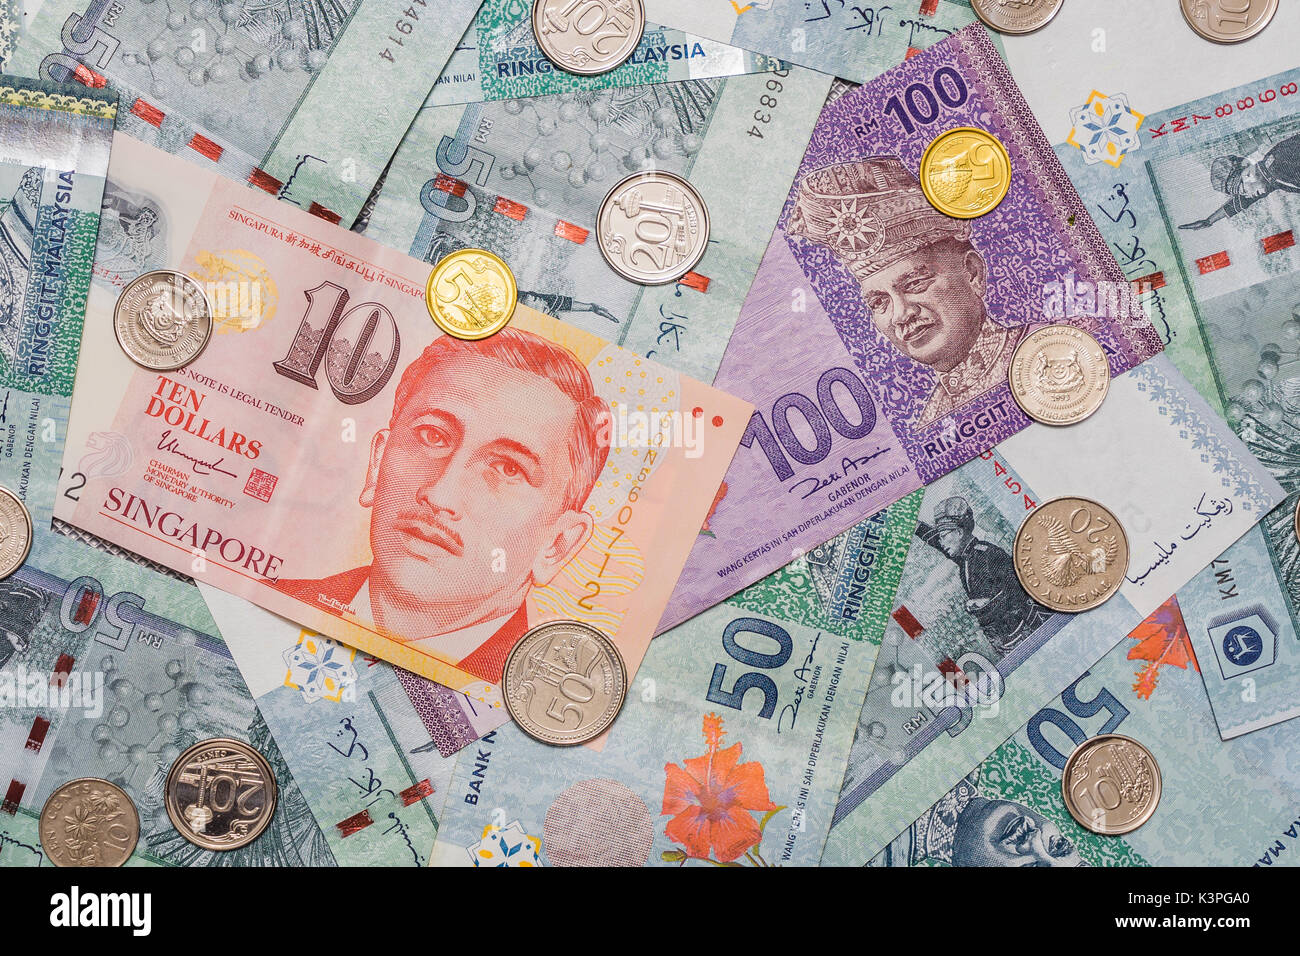 Singapore dollar and coins on top of malaysian ringgit currency on singapore dollar and coins on top of malaysian ringgit currency on pattern background malaysian ringgit symbol is rm currency code myr singapore dol biocorpaavc